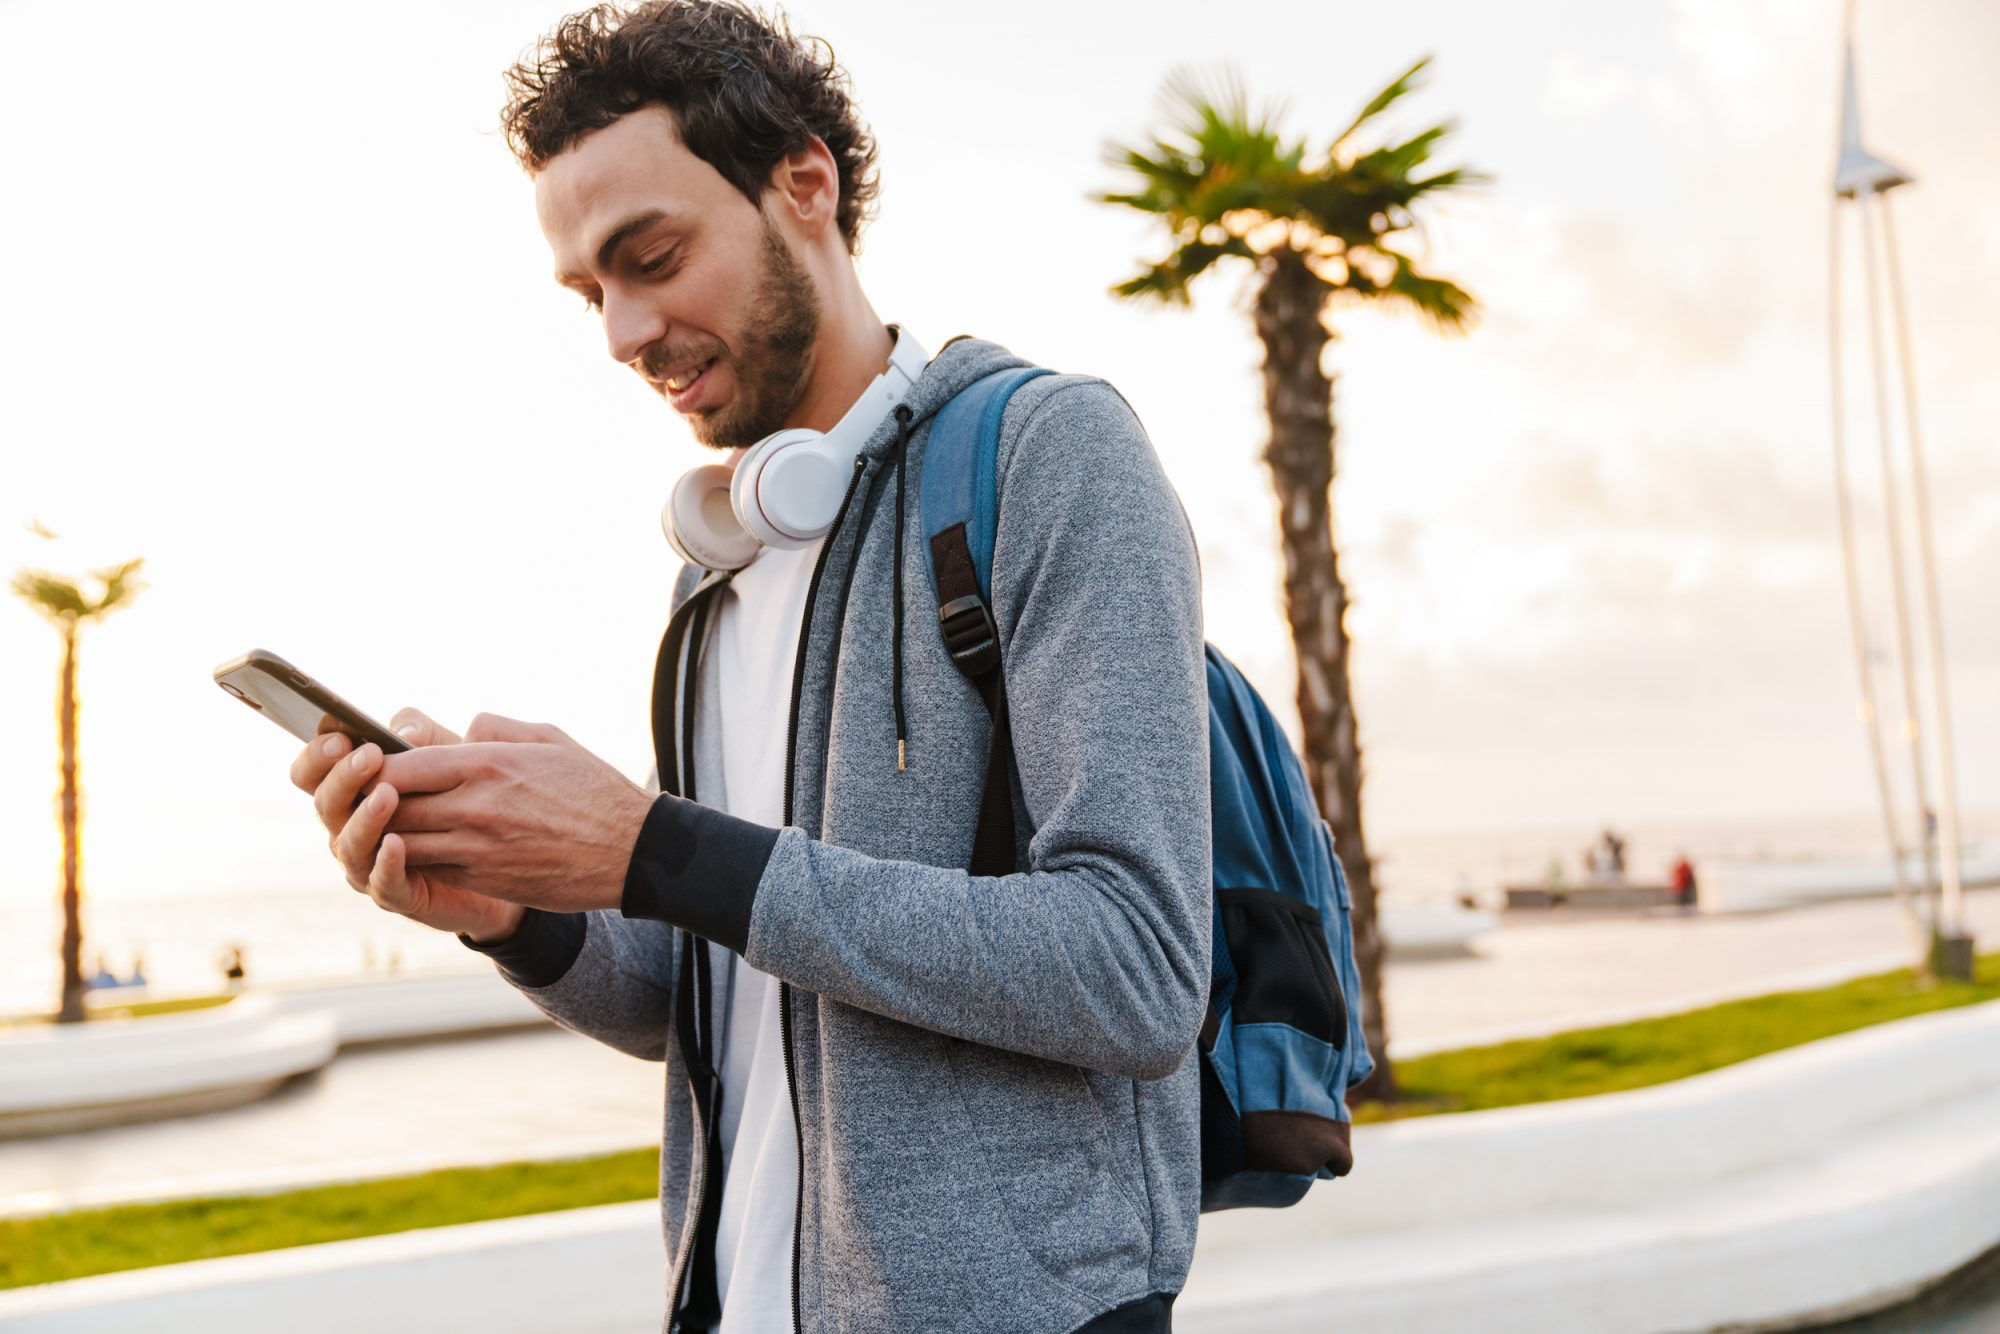 Google Tests New Feature that alerts of Using Phone While Walking